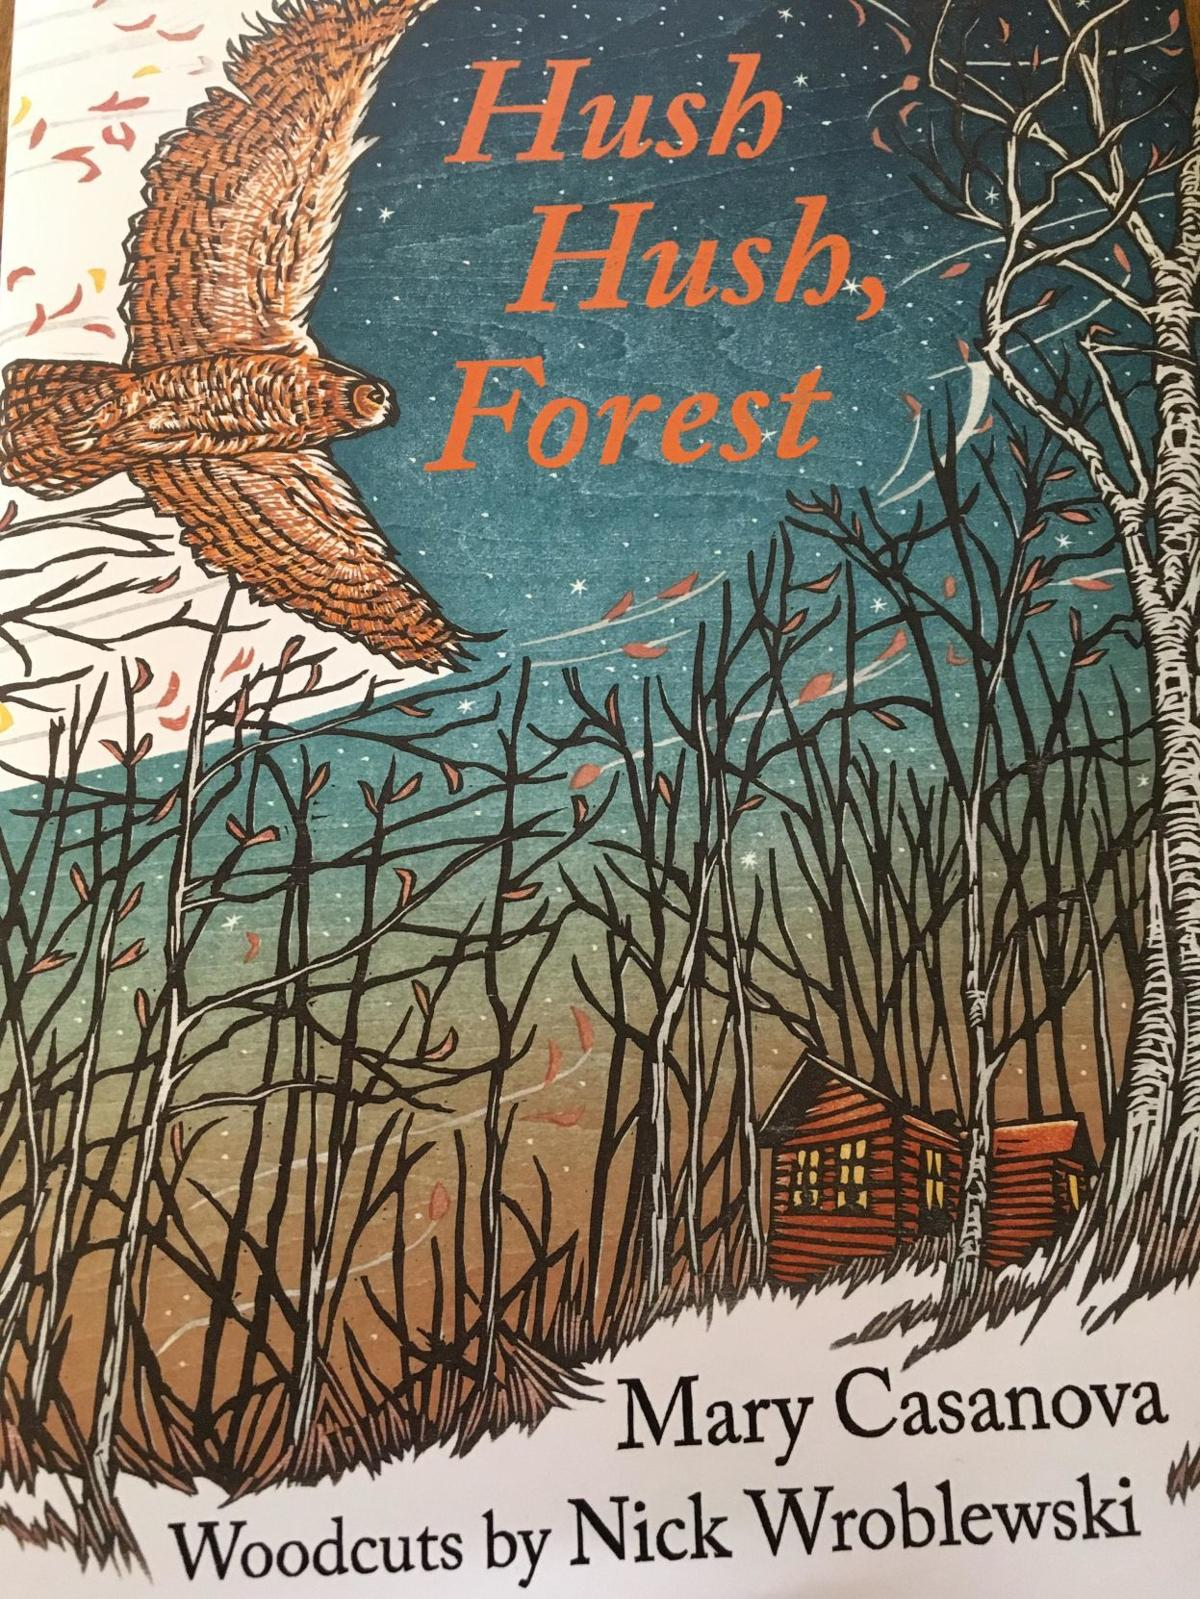 hush hush forest cover image